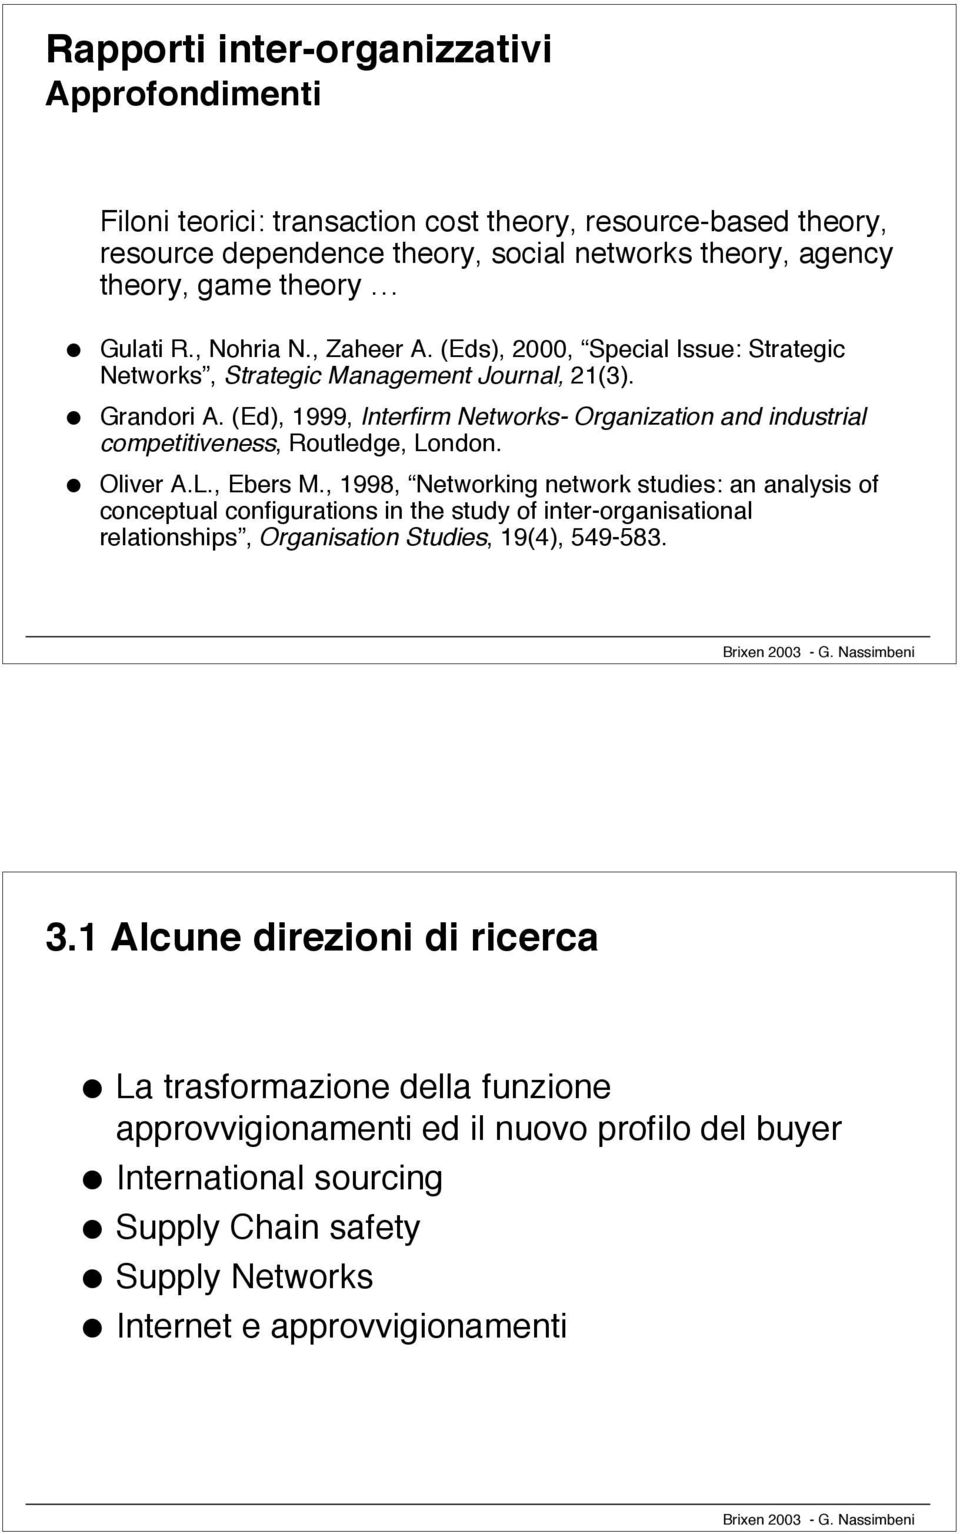 (Ed), 1999, Iterfirm Networks- Orgaizatio ad idustria competitiveess, Routedge, Lodo. Oiver A.L., Ebers M.